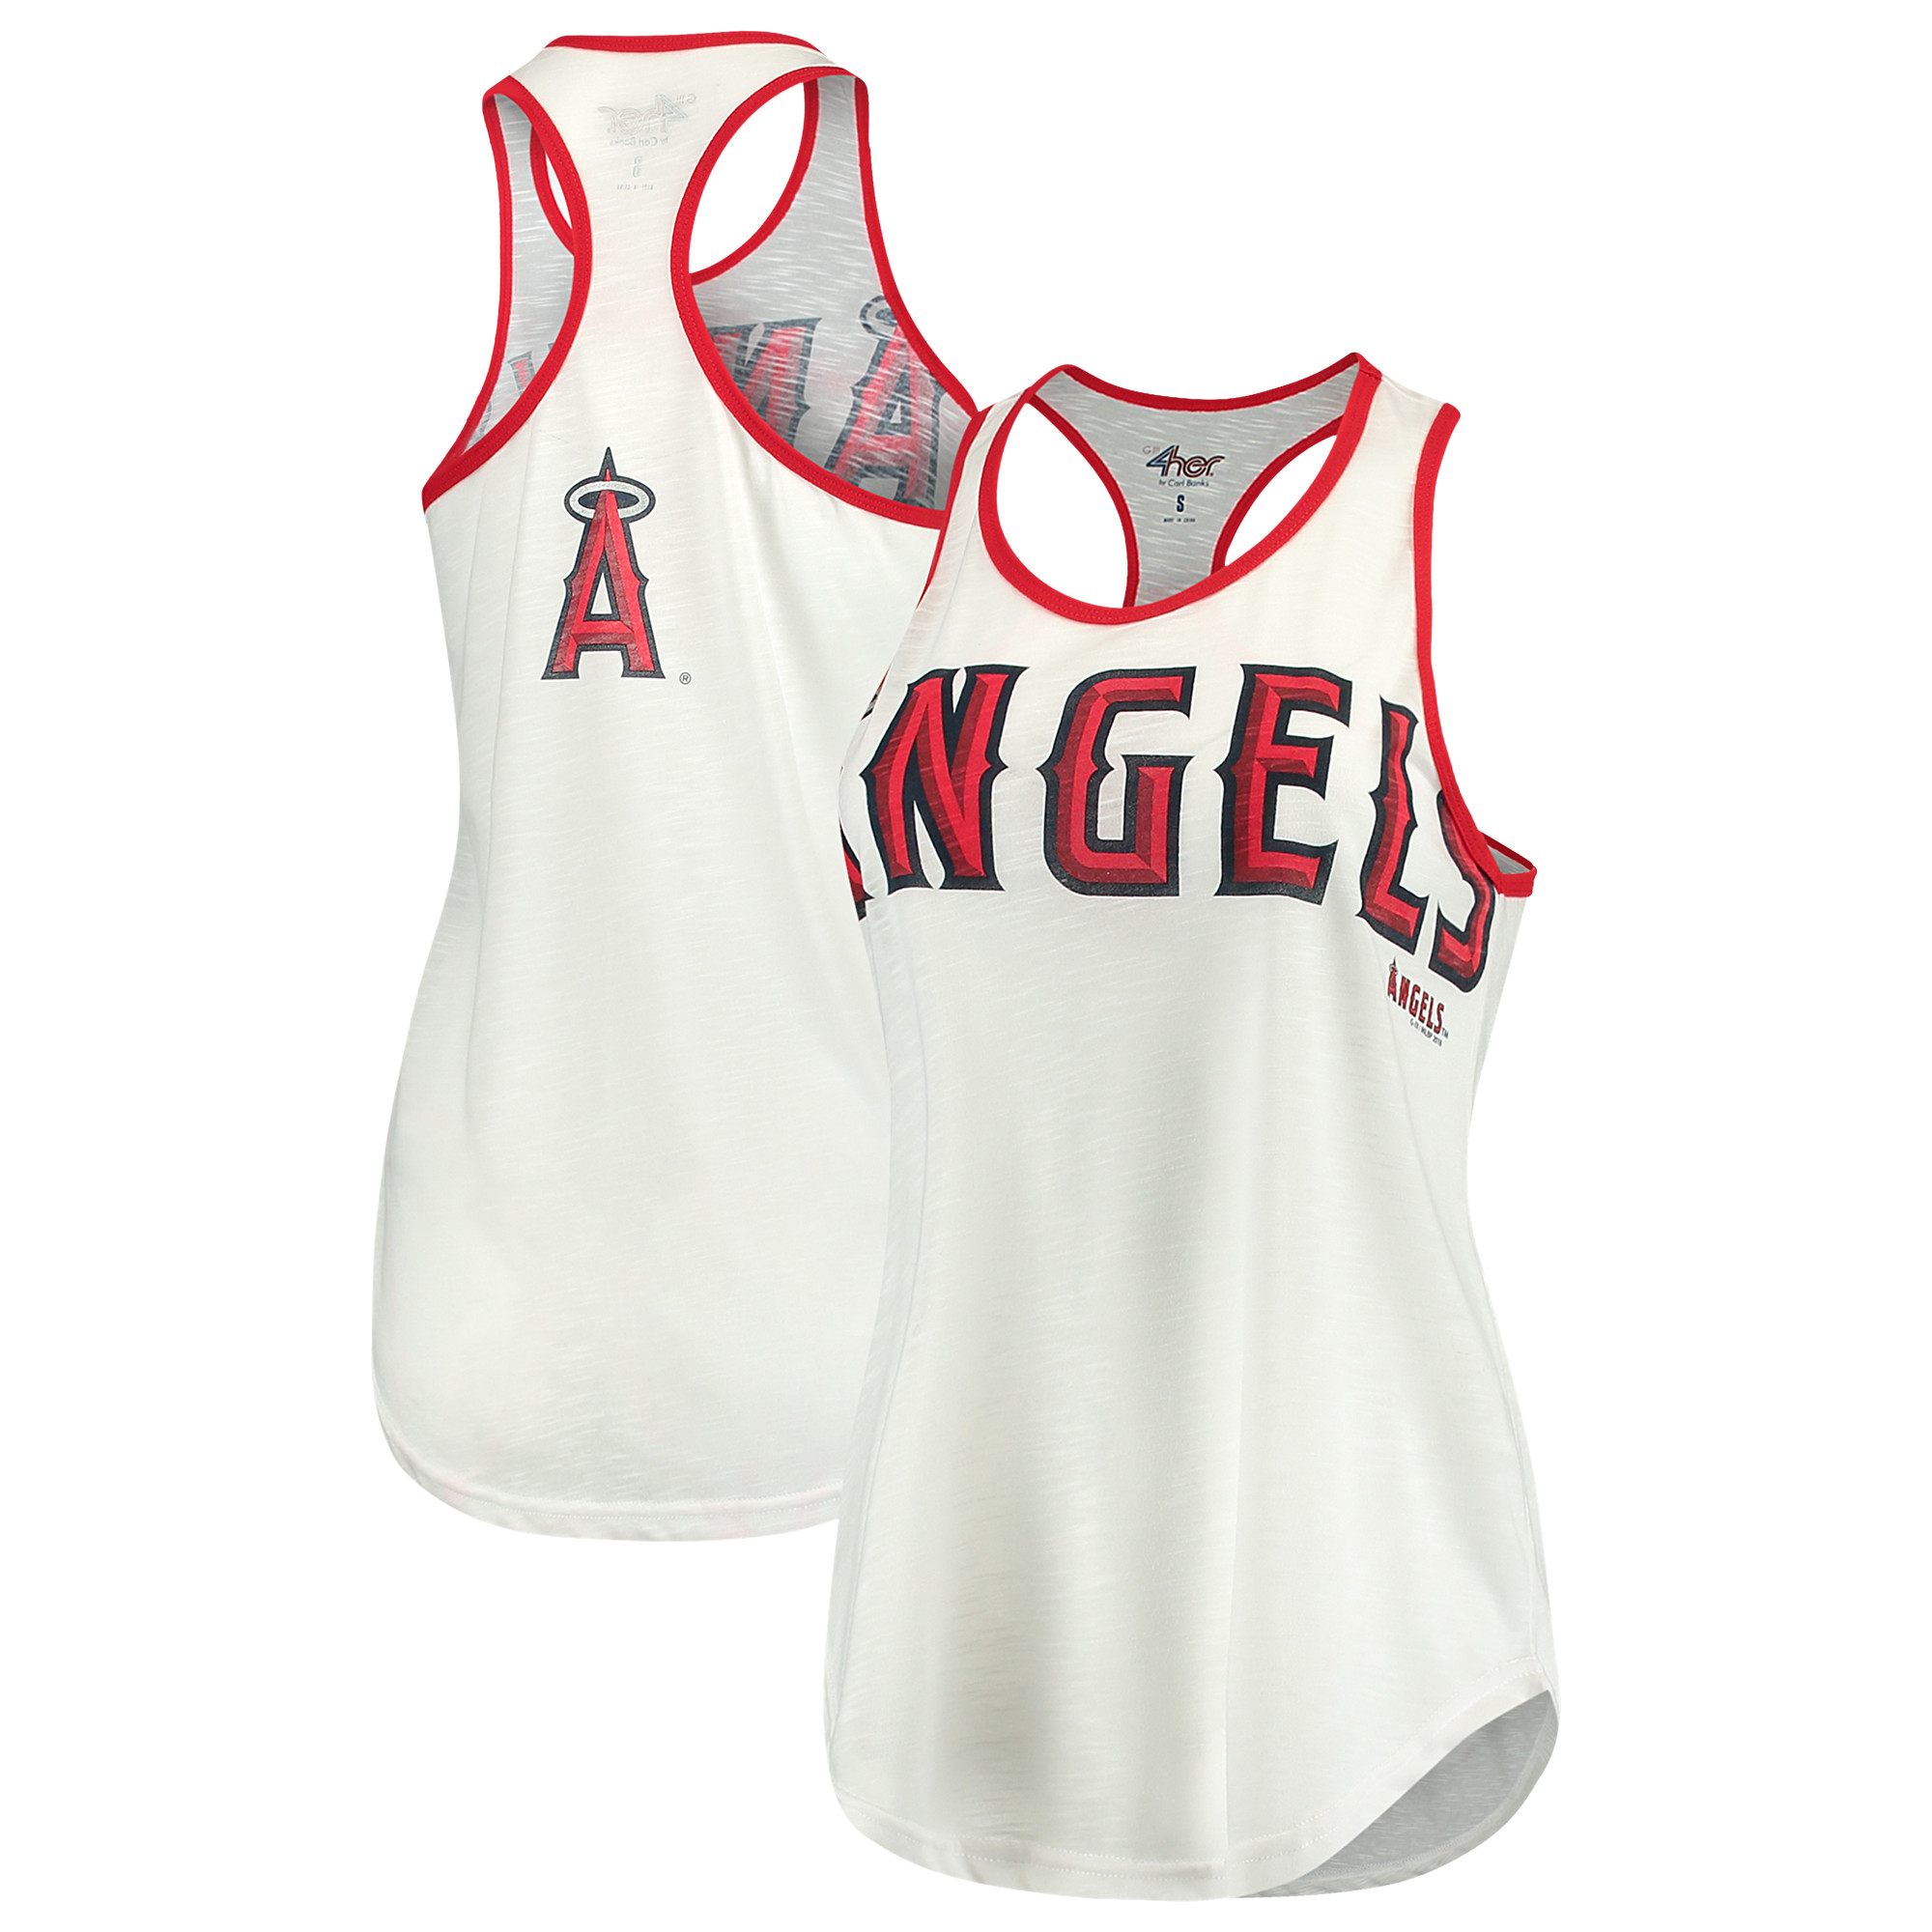 Los Angeles Angels G-III 4Her by Carl Banks Women's Break the Game Tank Top - White